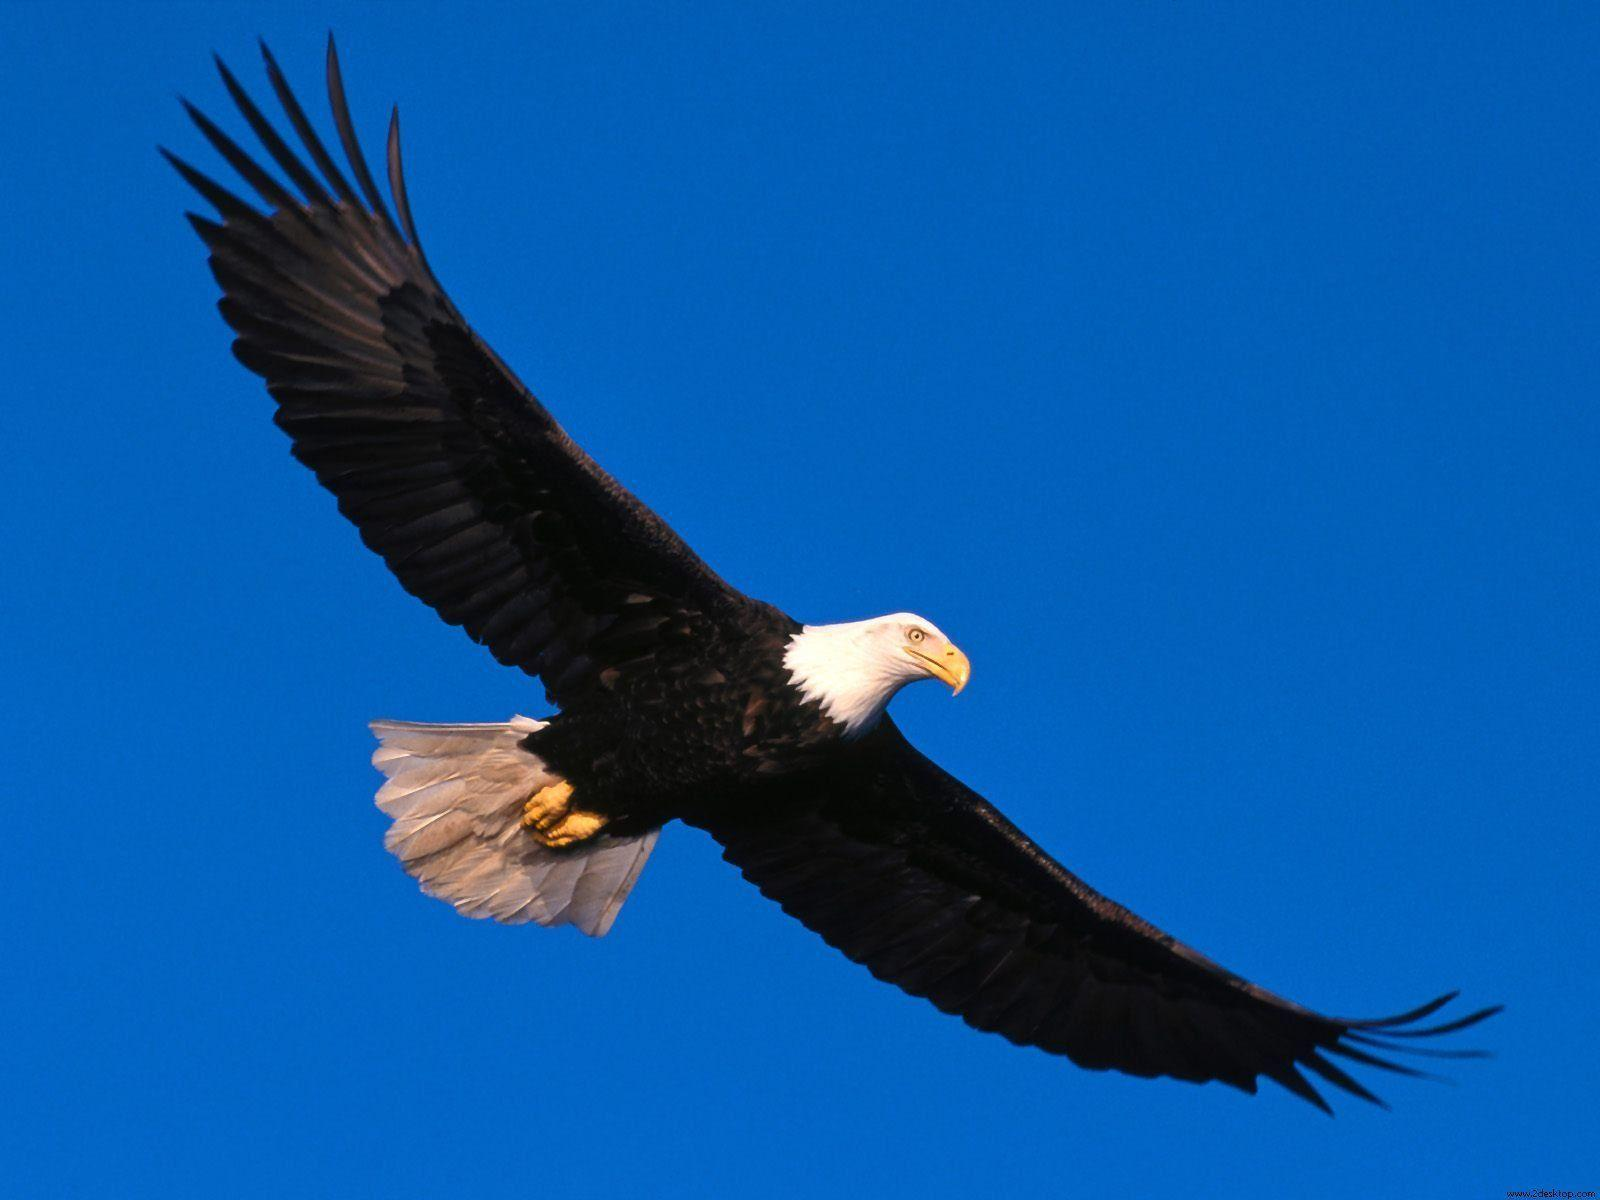 Bald Eagle Backgrounds Wallpapers Panda 1600x1200PX ~ Wallpapers